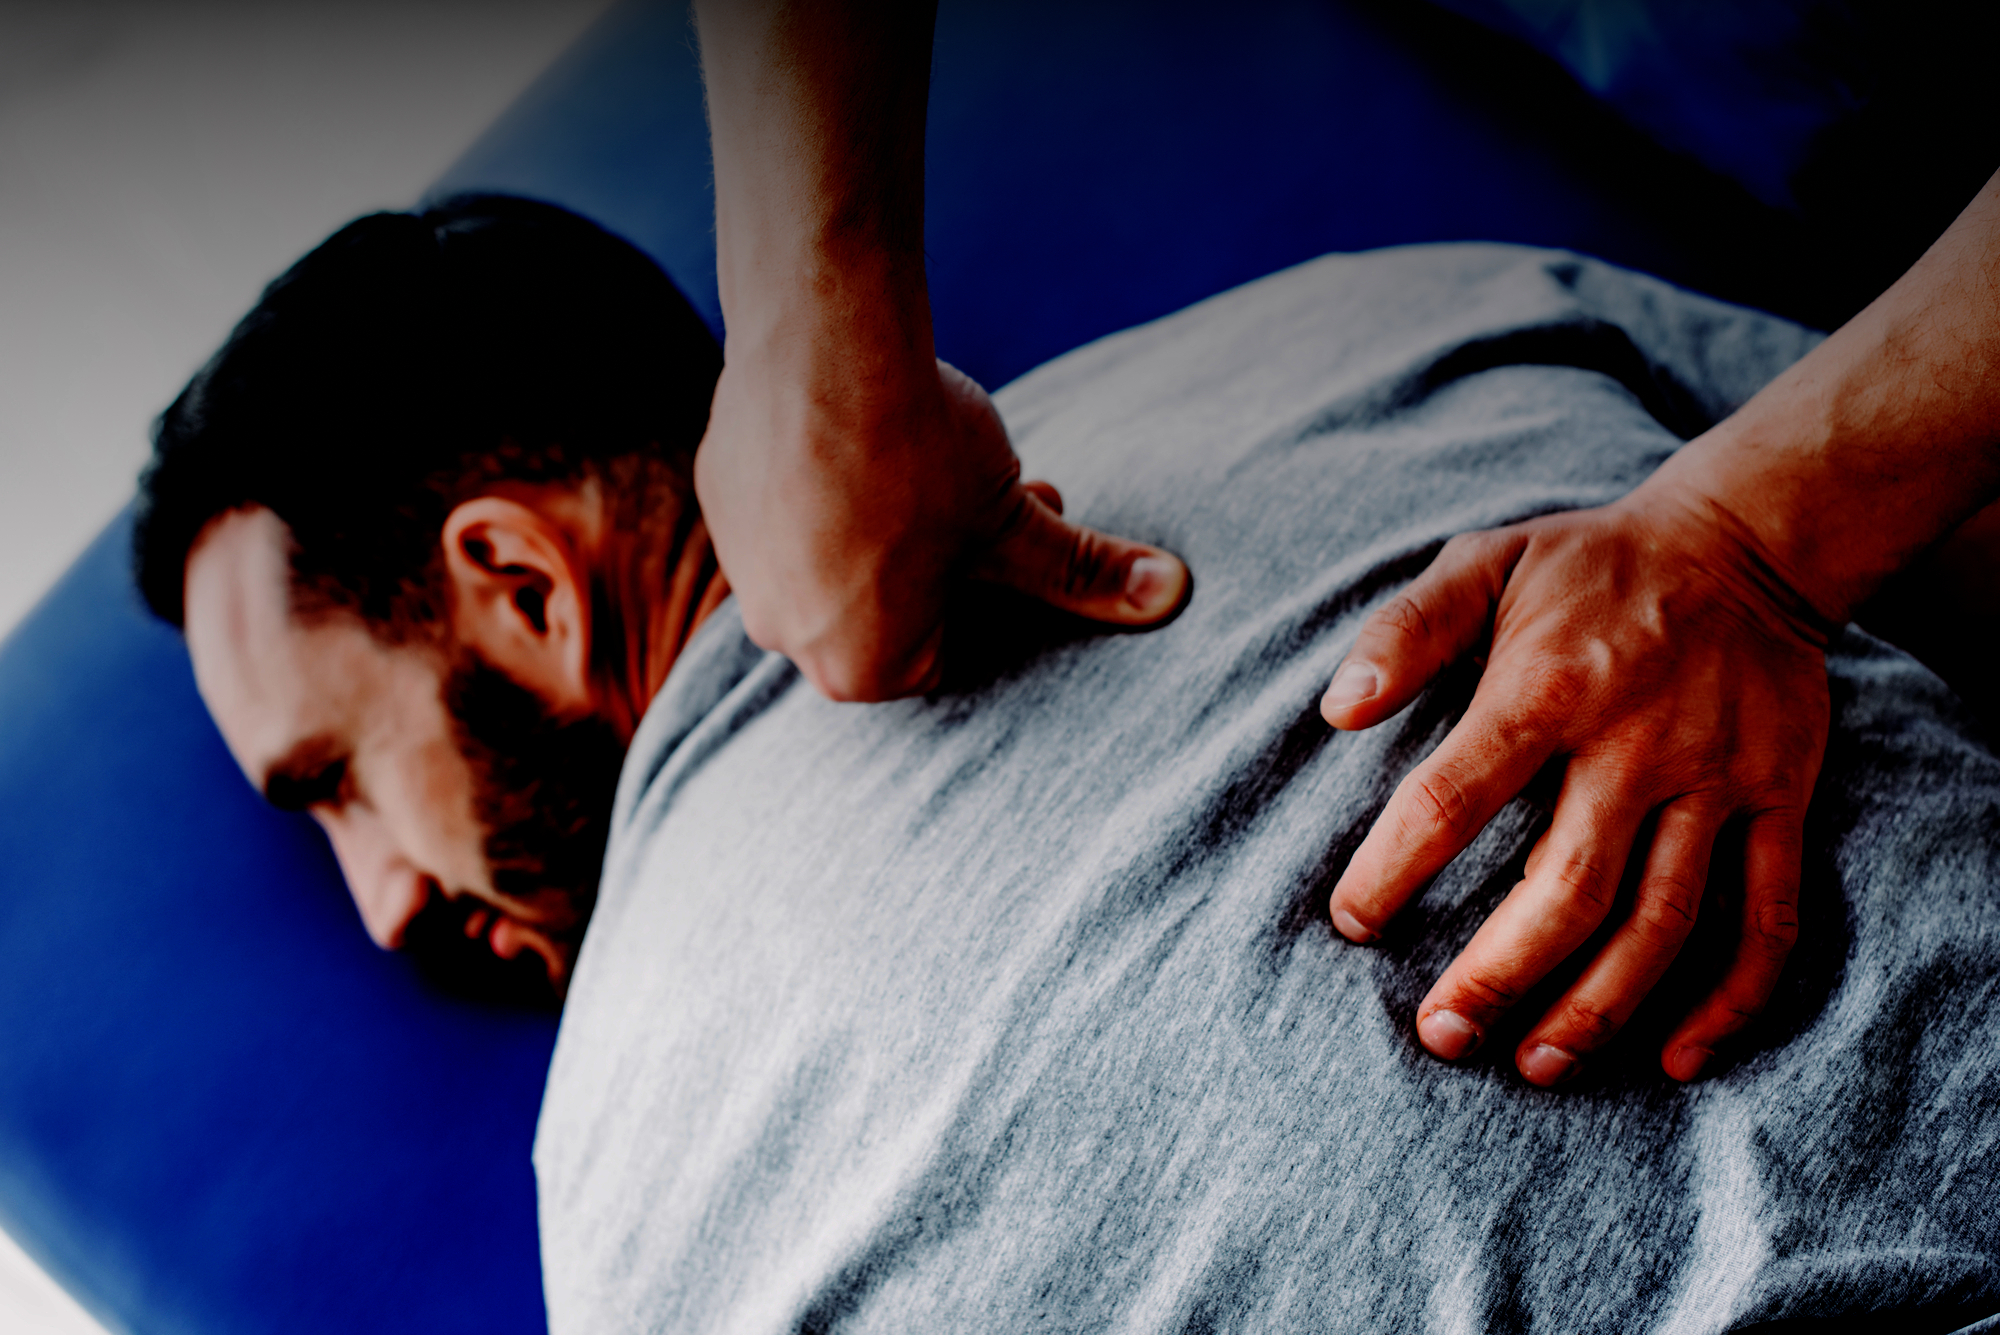 Man receiving back massage treatment on osteopath mat